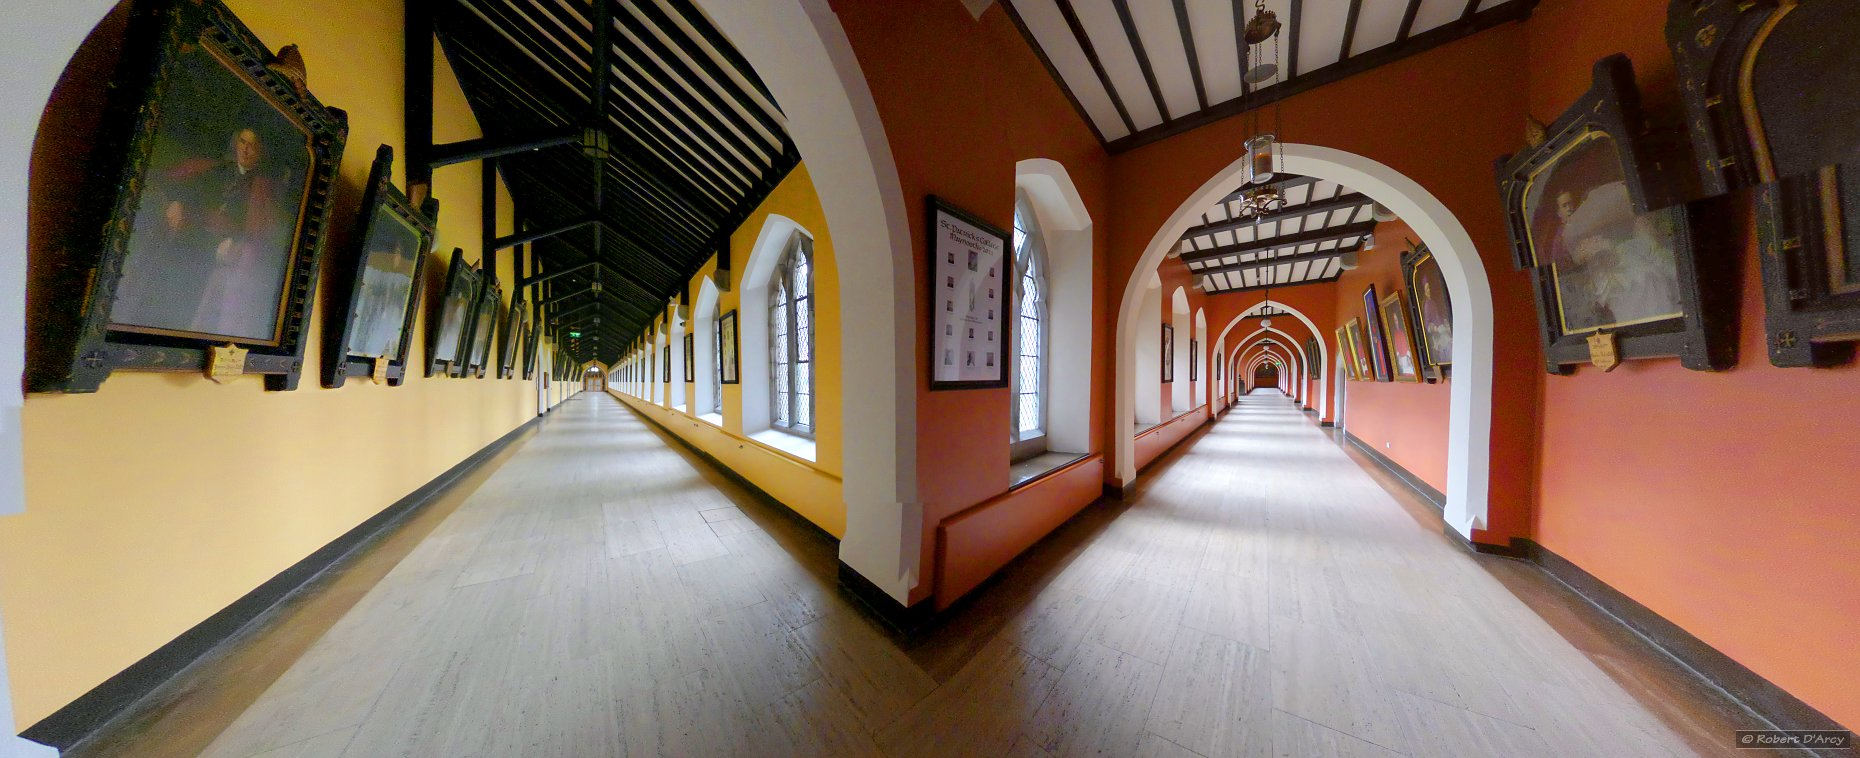 The corridors of St. Patrick's House - perspective projection